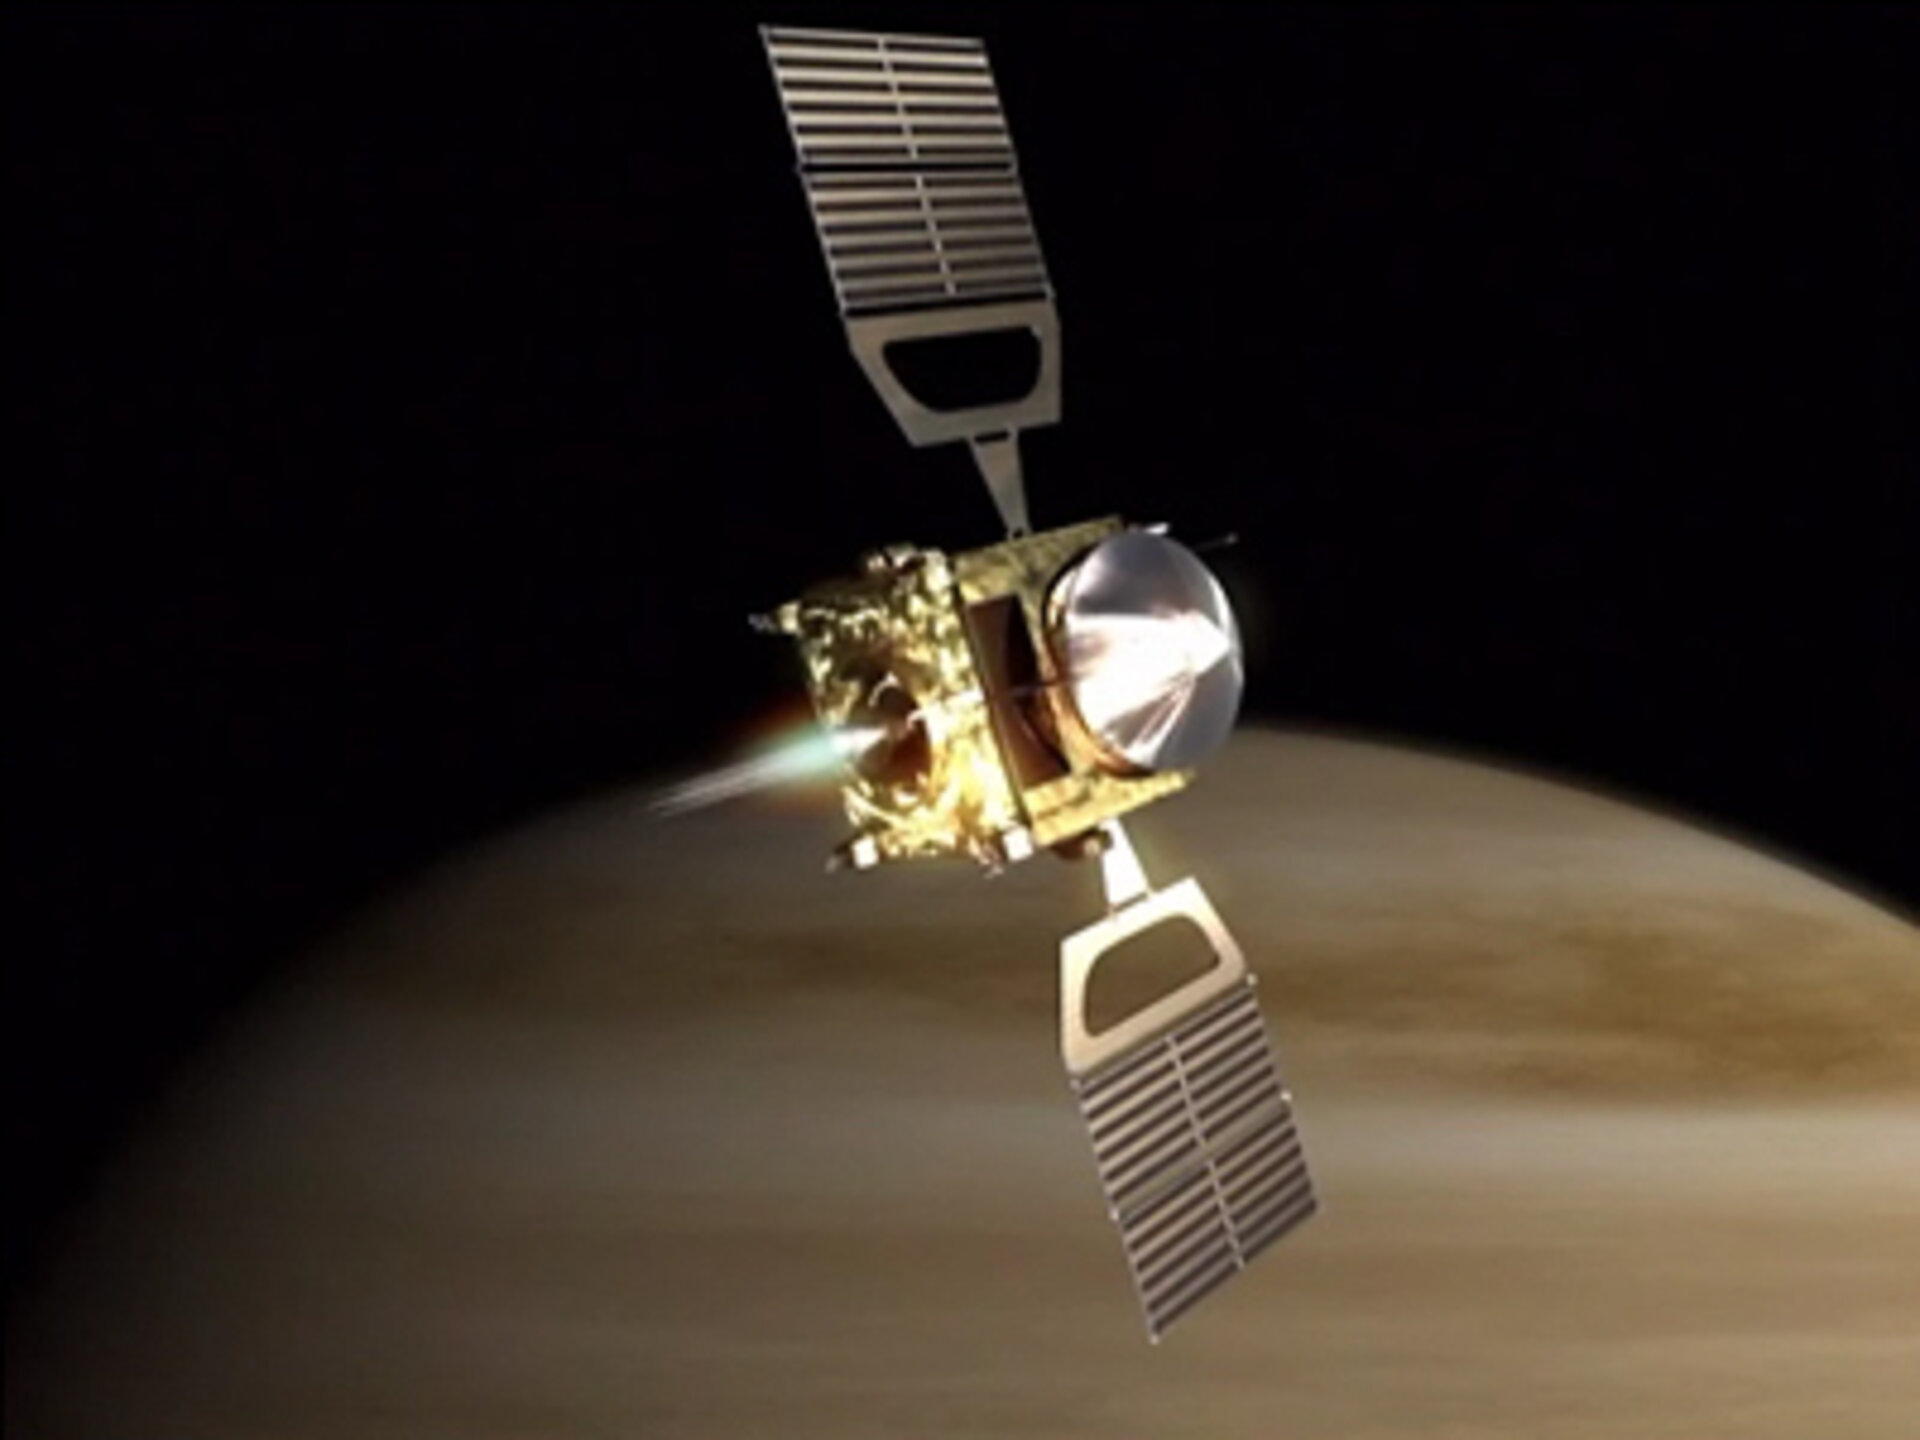 Venus Express orbit insertion